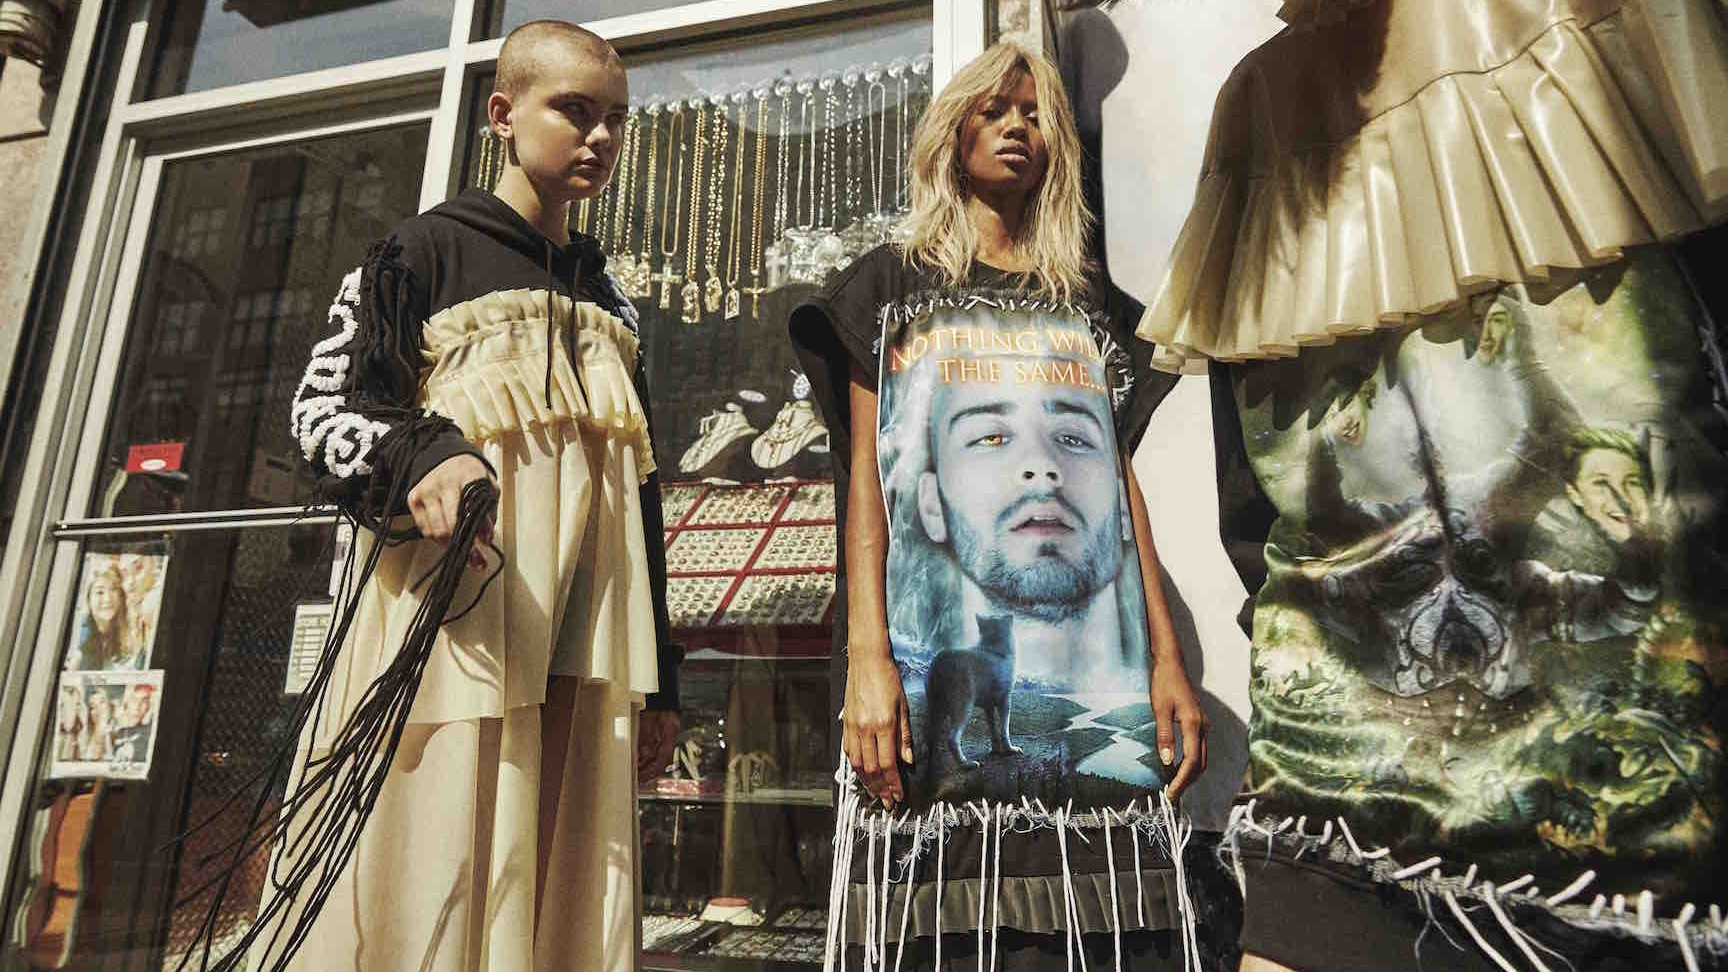 namilia, the berlin brand deifying justin bieber and taking down donald trump